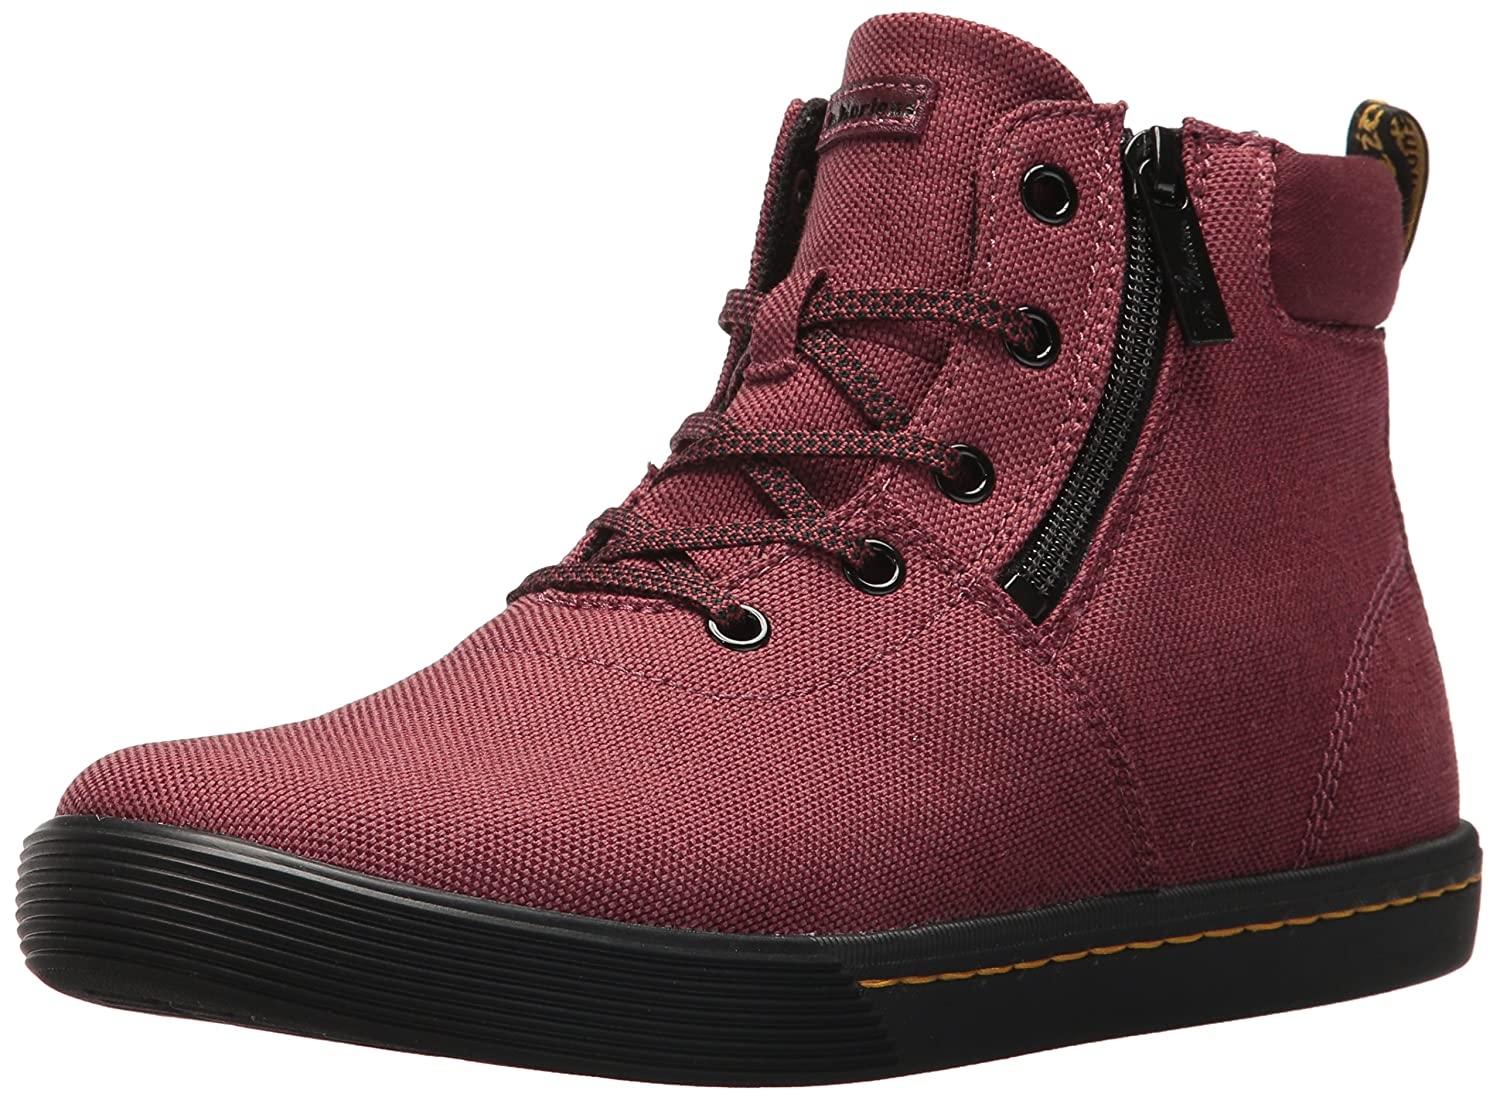 Dr. Martens Women's Maegley Fashion Boot B072N2N5RP 5 Medium UK (7 US)|Cherry Red Woven Textile+fine Canvas